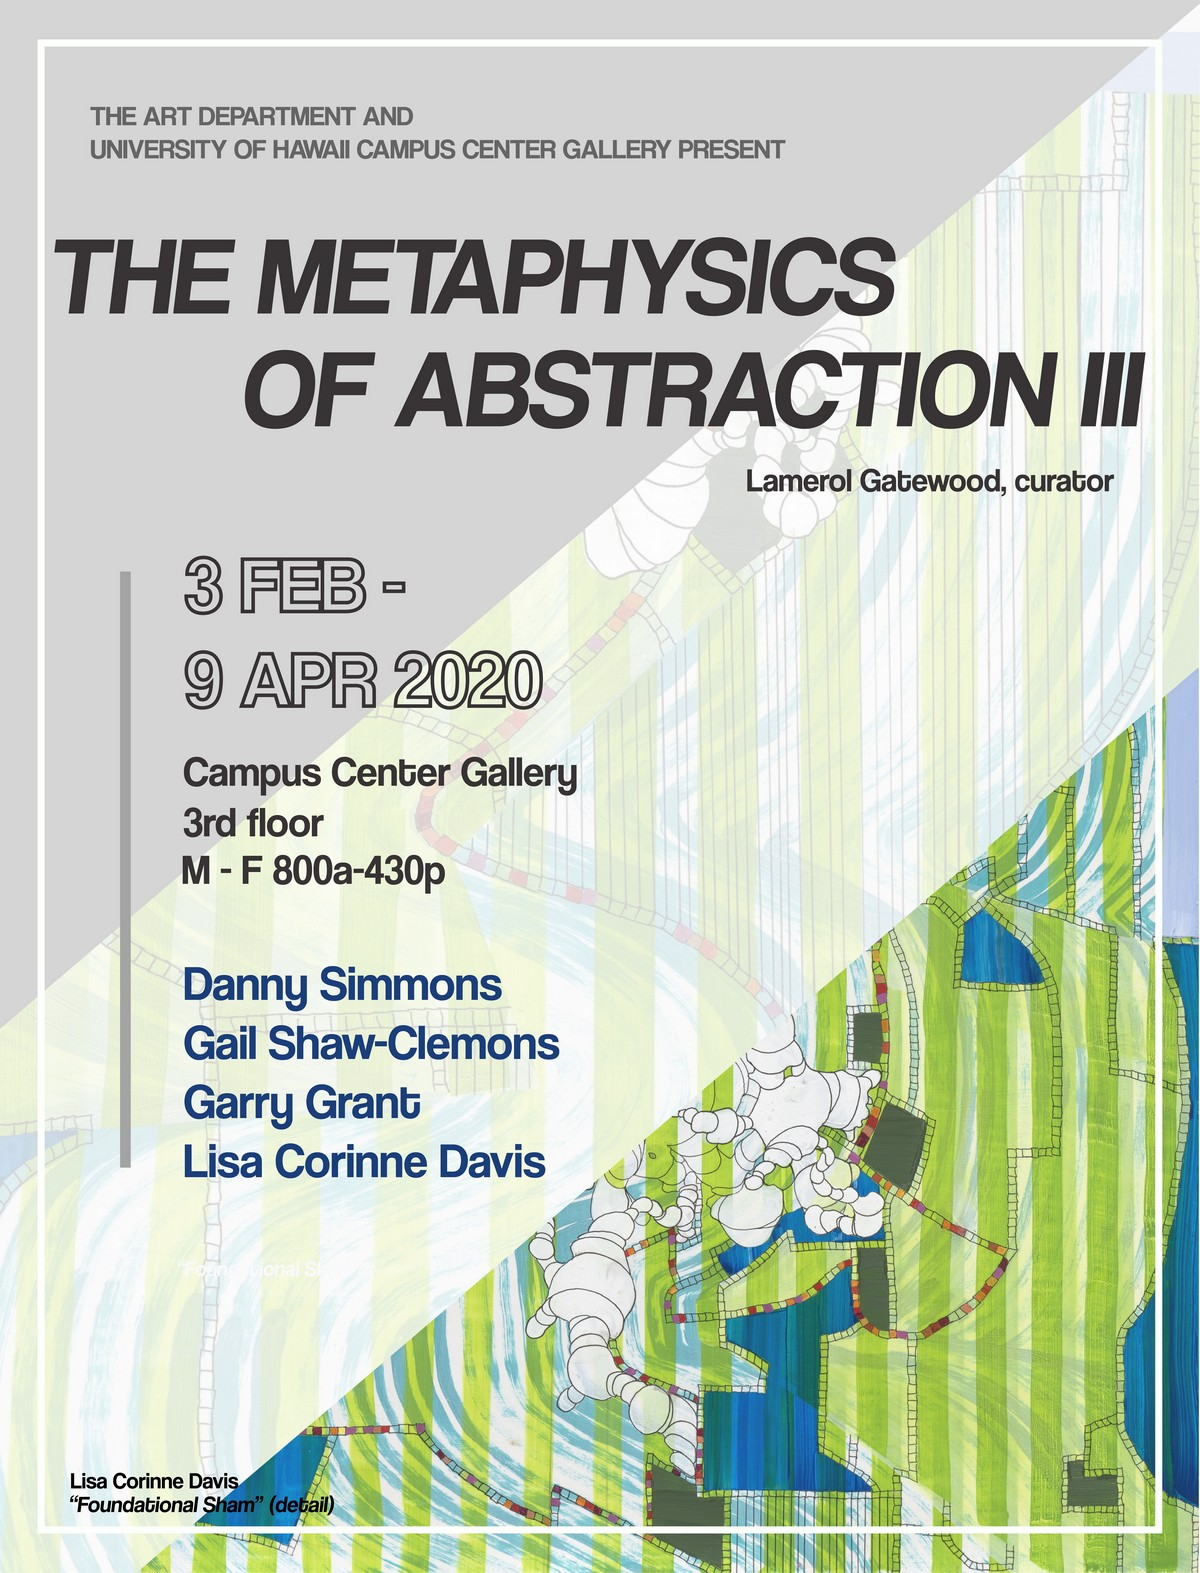 "The Department of Art at the University of Hawaii at Hilo is presenting an art exhibit in celebration of Black History Month. ""The Metaphysics of Abstraction"" is on display from Feb. 3 through April 9, 2020, from 8:00 a.m. to 4:30 p.m. in the East wing of the Campus Center Gallery. The exhibit is curated by Lamerol Gabewood and features artists Danny Simmons, Gail Shaw-Clemons, Garry Grant, and Lisa Corrinne Davis."